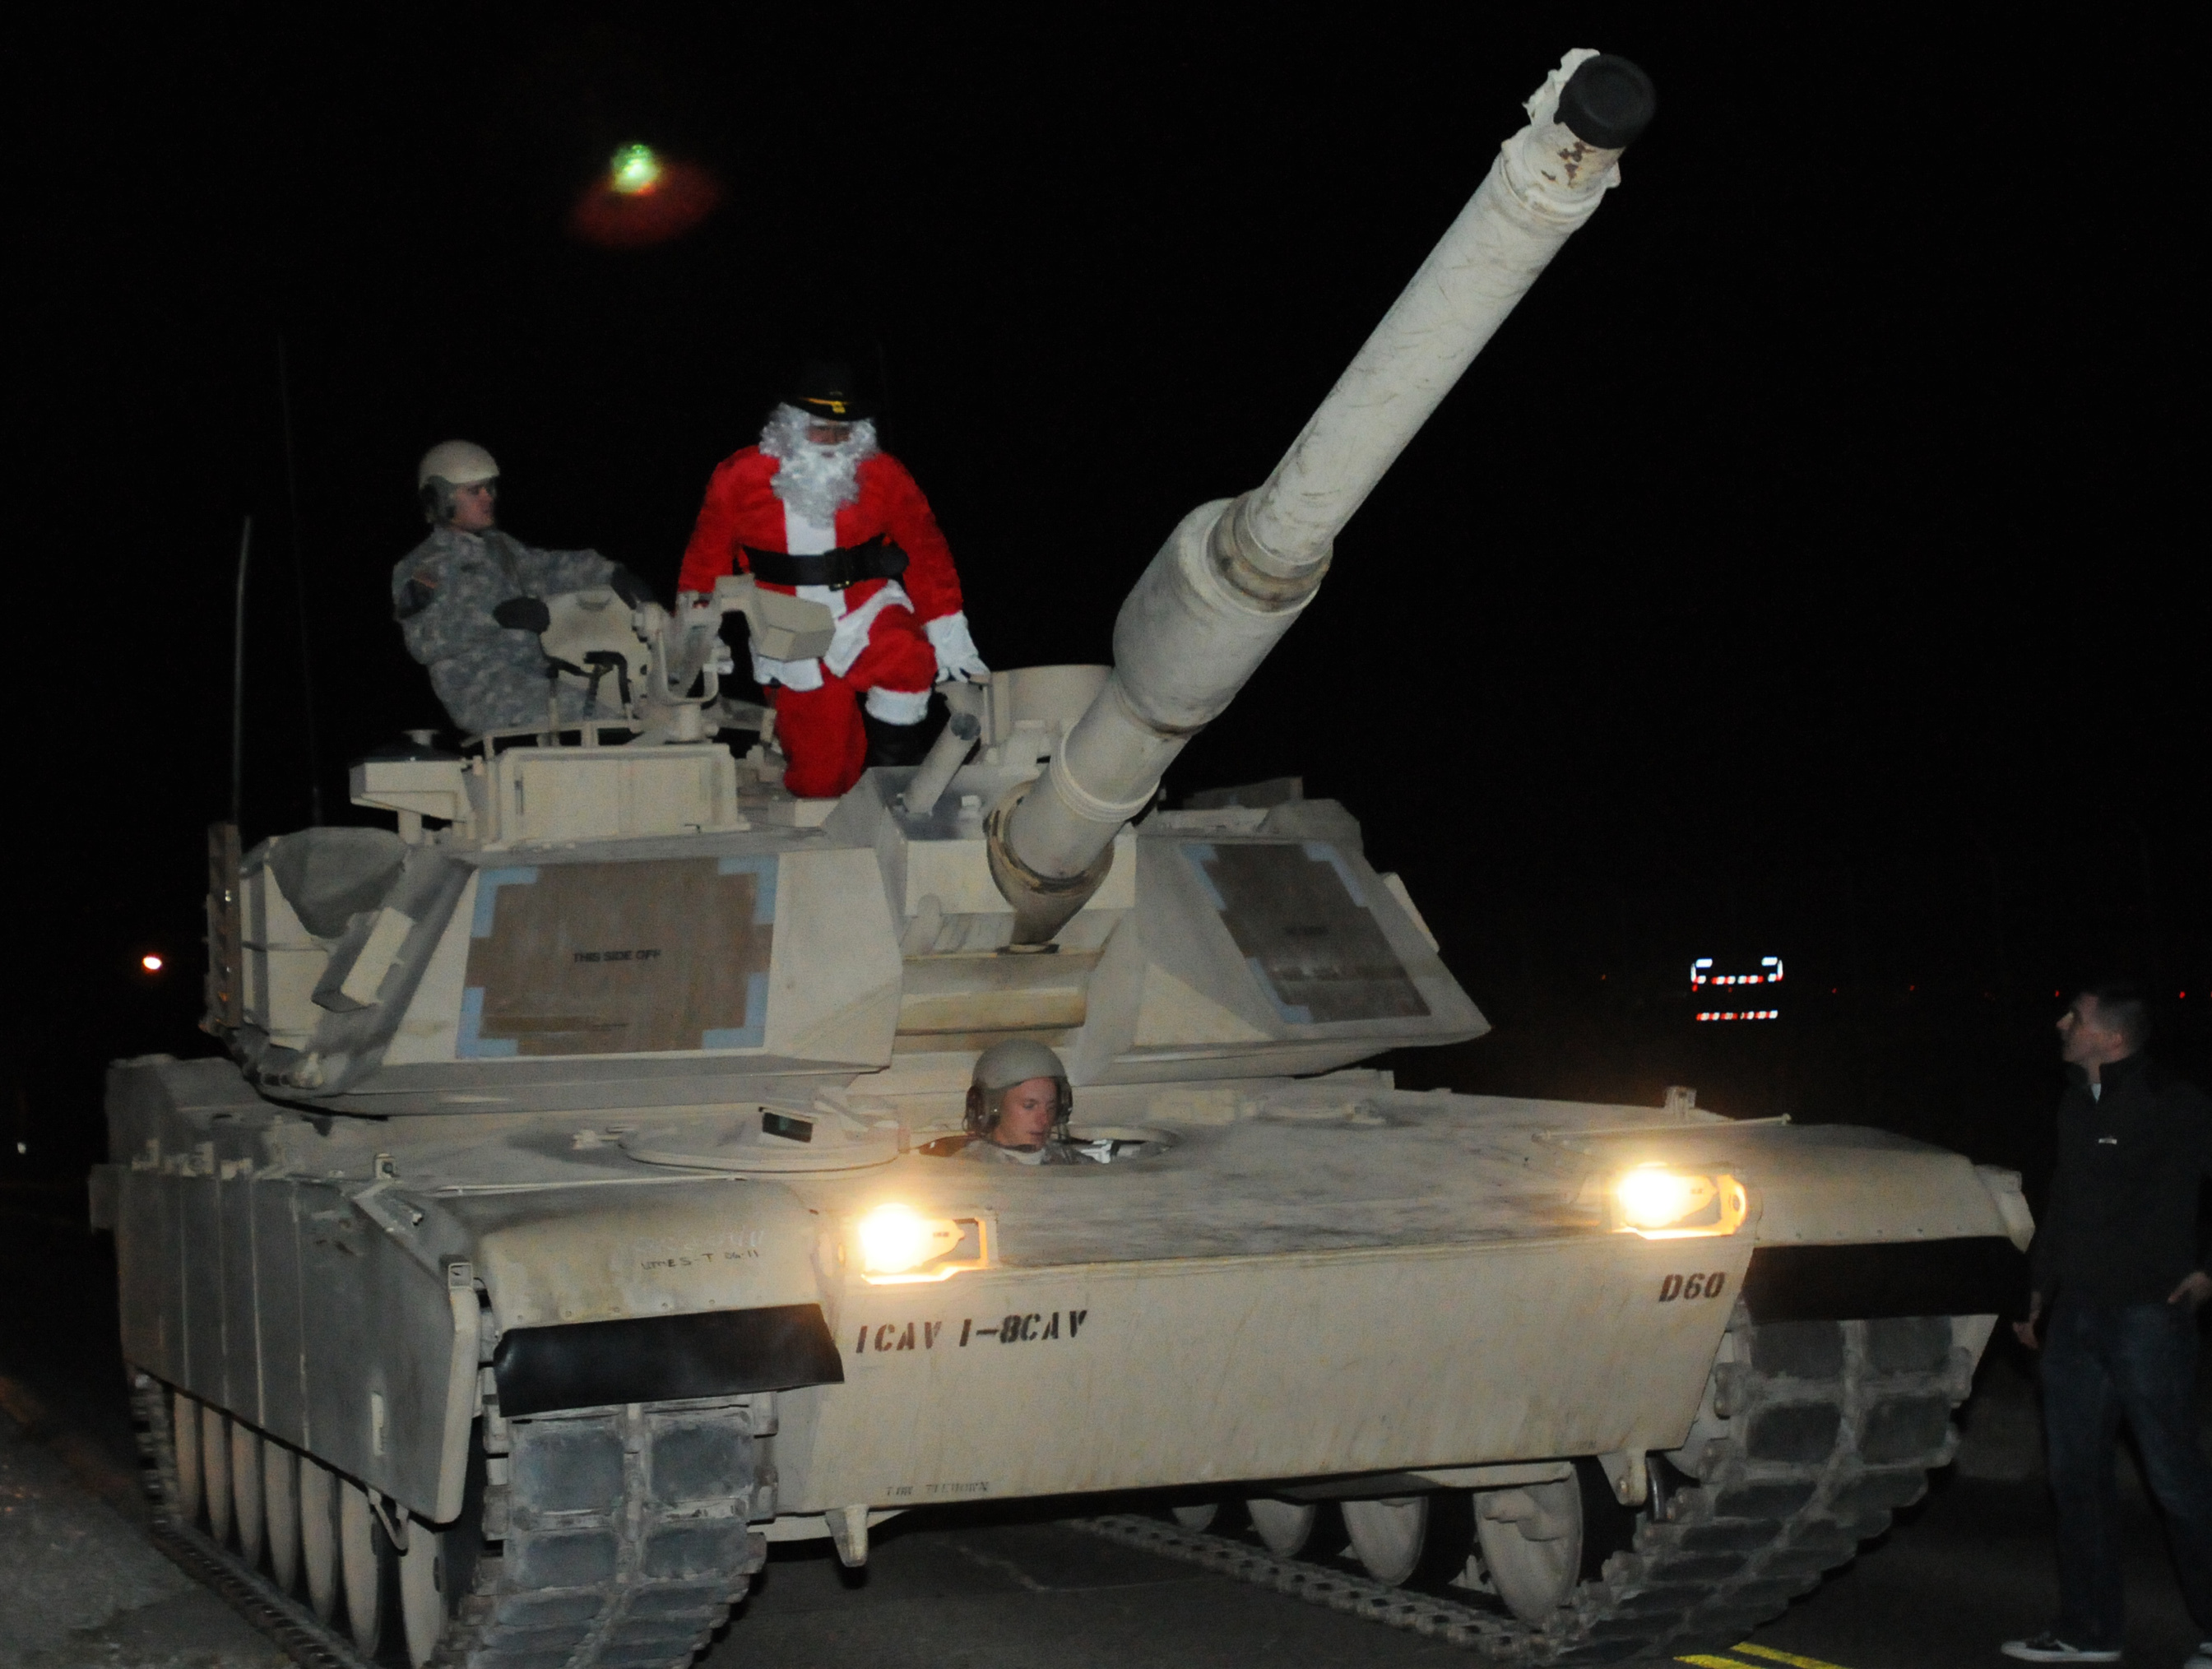 Build A Mustang >> File:'Mustangs' host Christmas party, build family morale 121211-A-CJ112-843.jpg - Wikimedia Commons